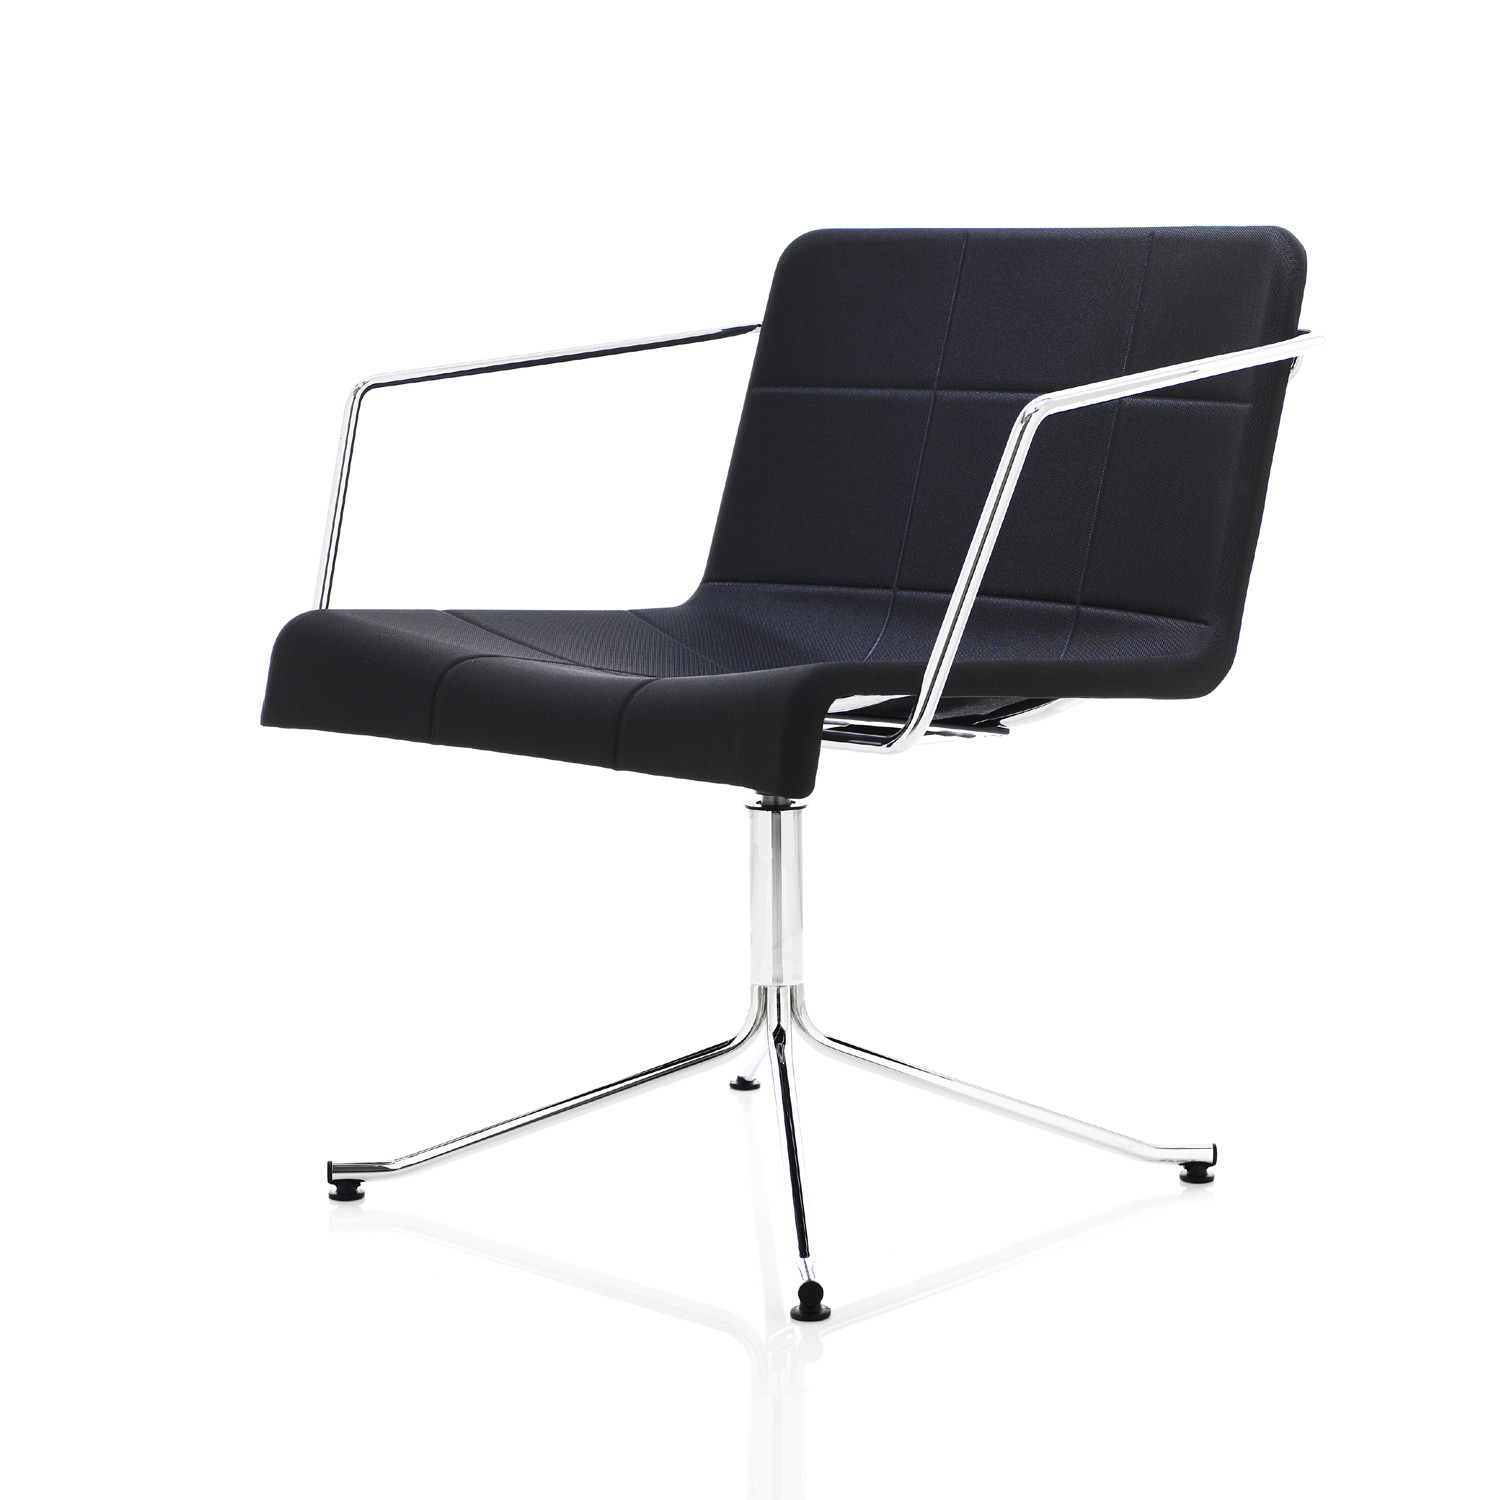 Millibar Lounge Chair on four-star base